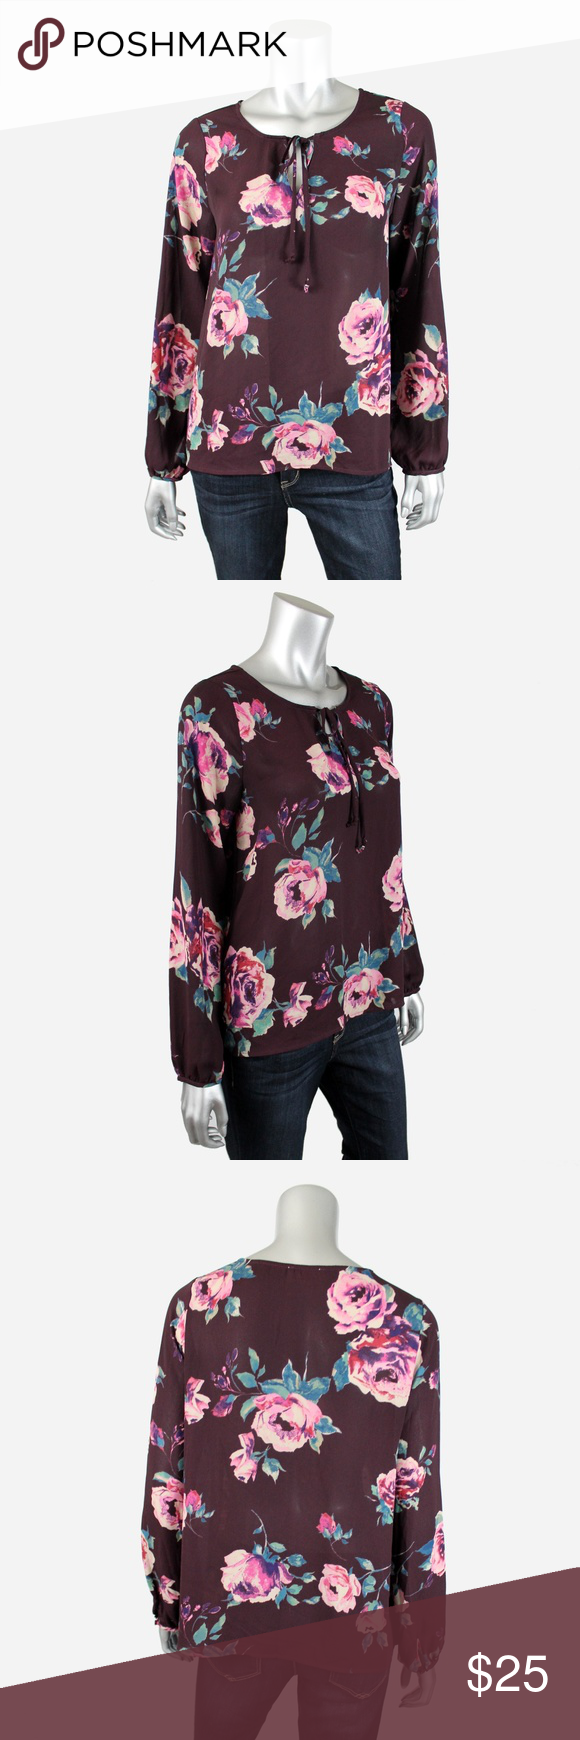 Everly Floral Long Sleeve Keyhole Top M J031 Everly burgundy floral long sleeve top with keyhole scoop necline.  • 100% polyester • Excellent condition, no flaws or signs of wear.  All pictures are my own & of the actual item for sale. Offers welcome, no trades. Everly Tops Blouses